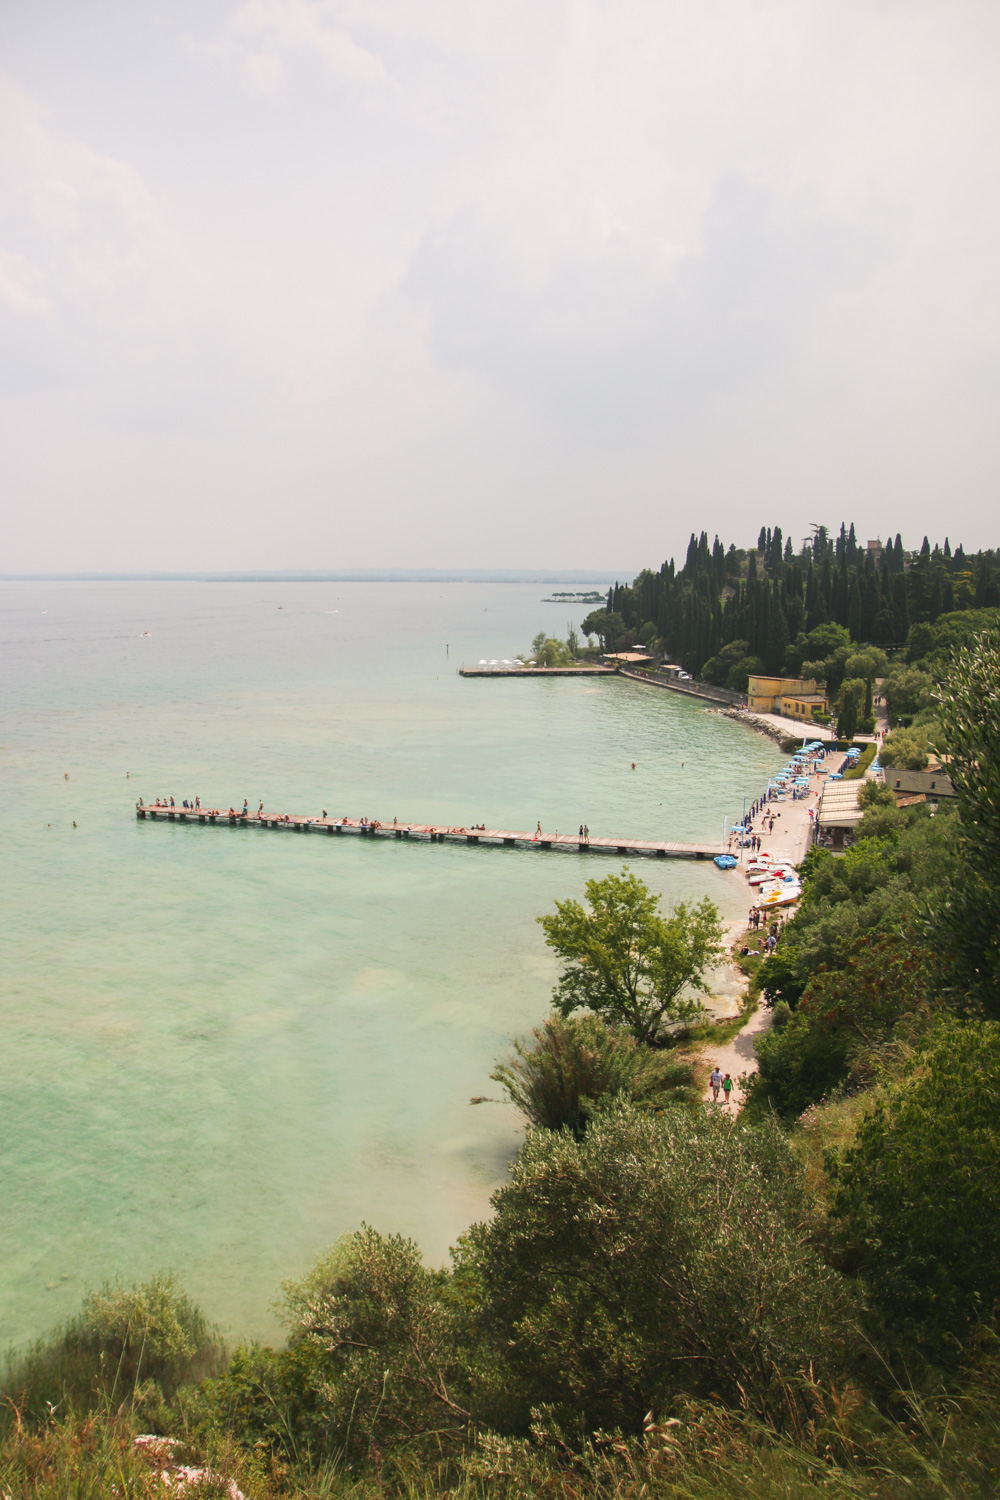 Beaches in Sirmione, Lake Garda